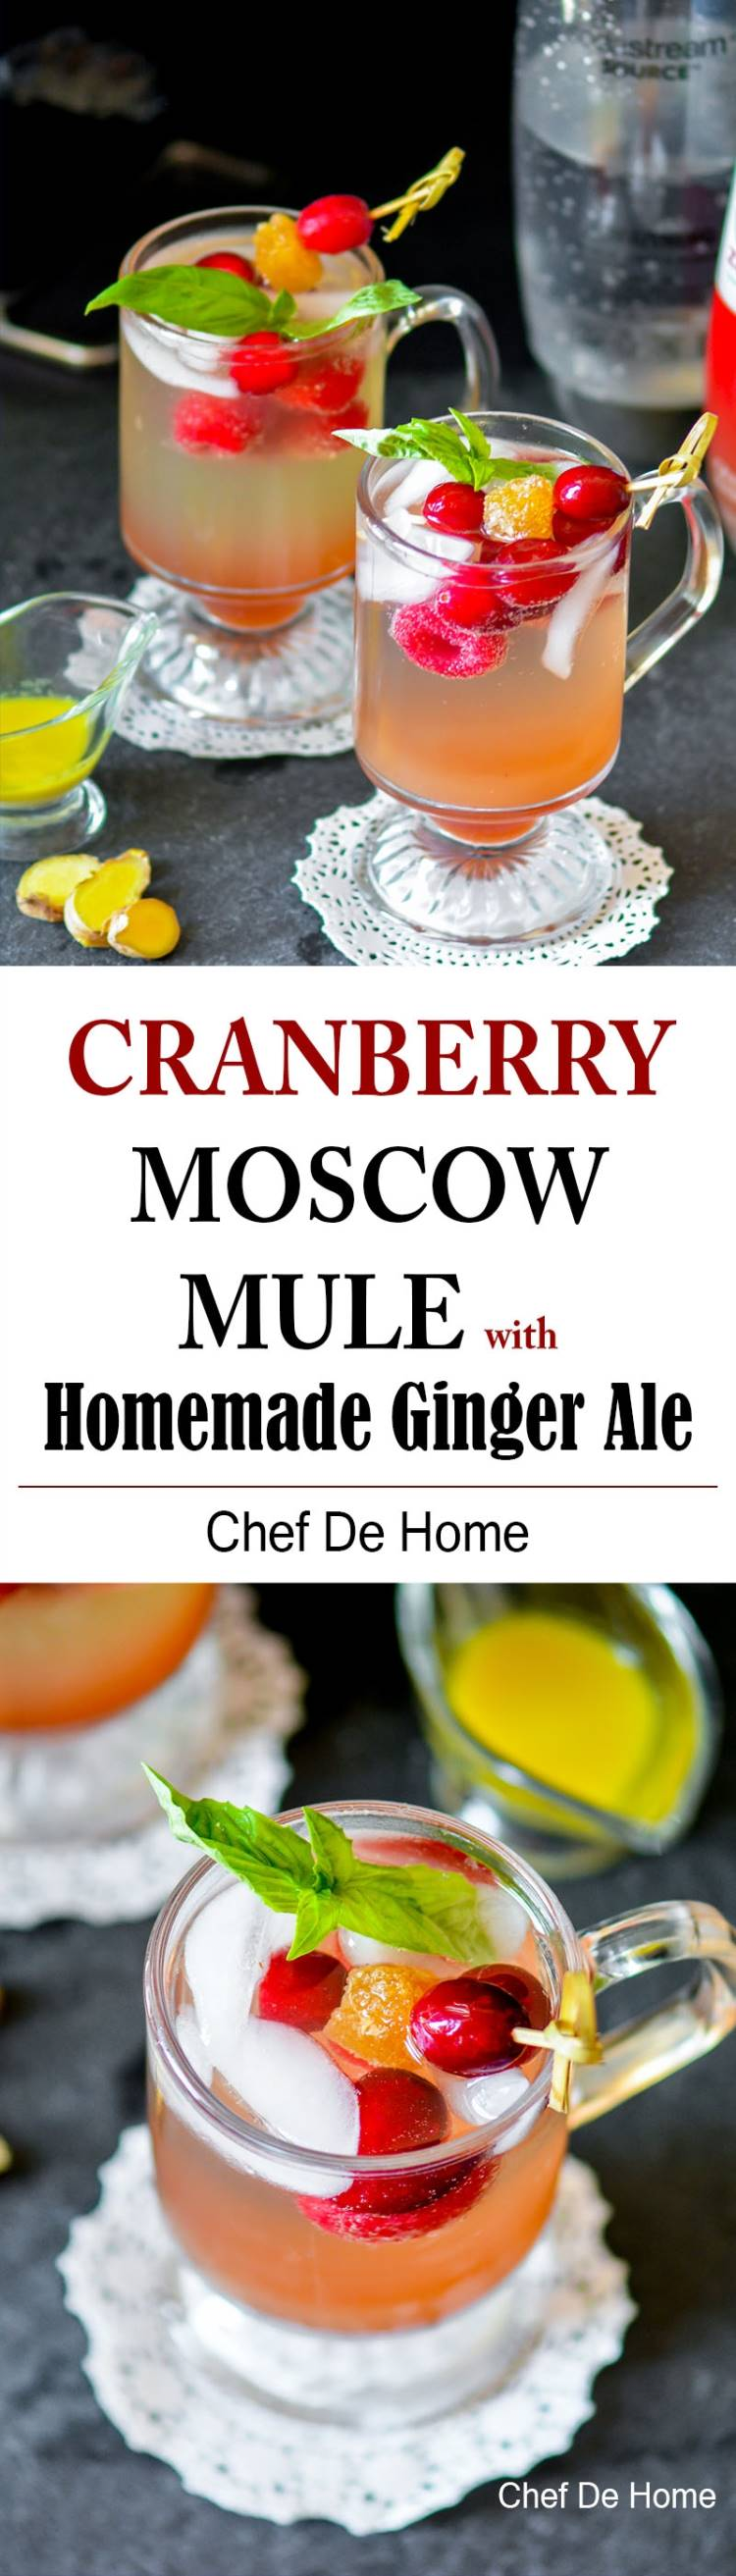 Cranberry Moscow Mule with Homemade Ginger Ale | chefdehome.com